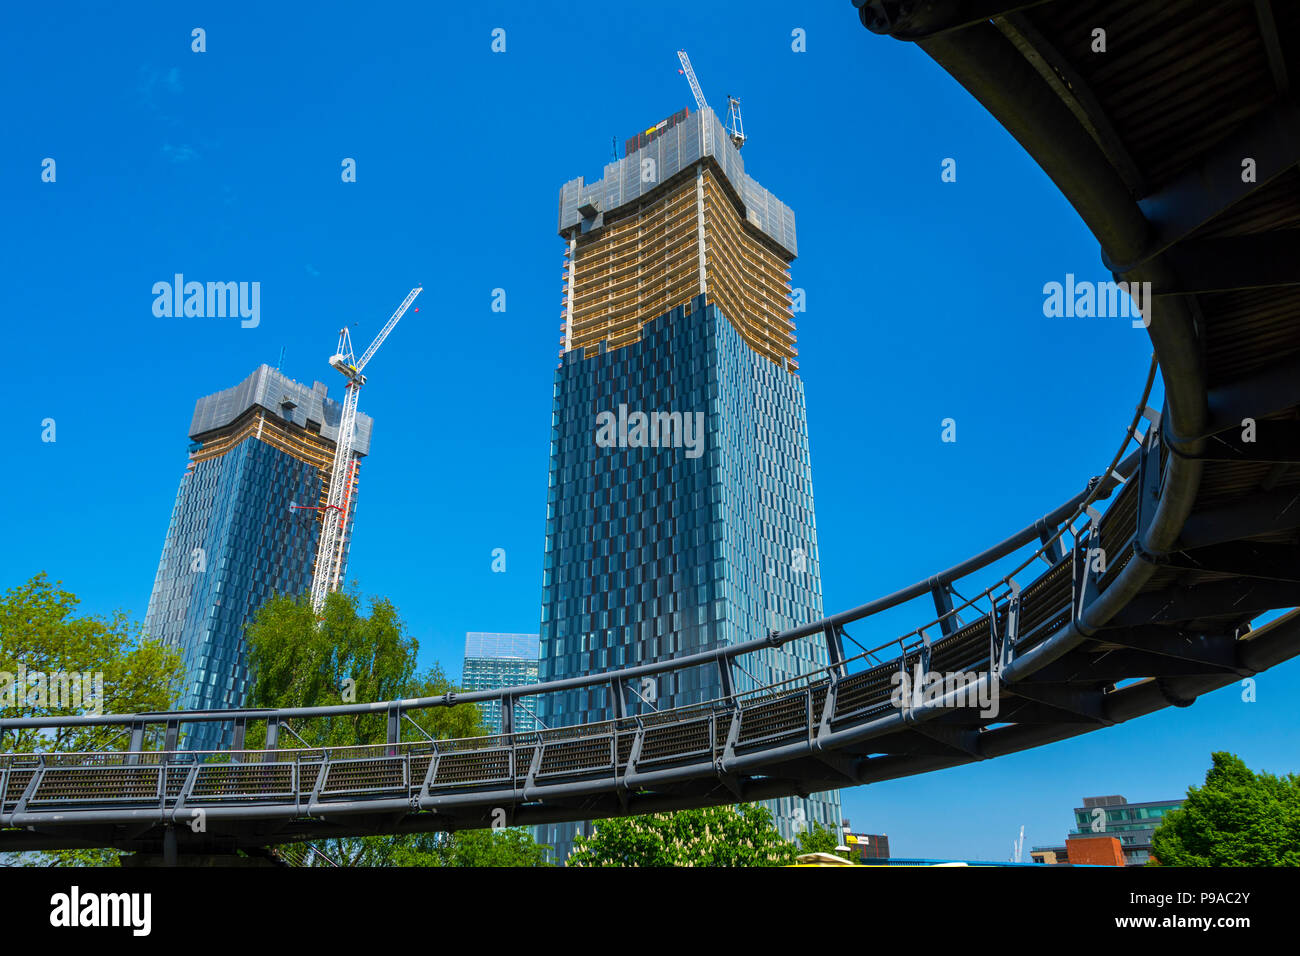 Two of the Deansgate Square apartment blocks (under construction), from the Mancunian Way footbridge, Manchester, England, UK - Stock Image